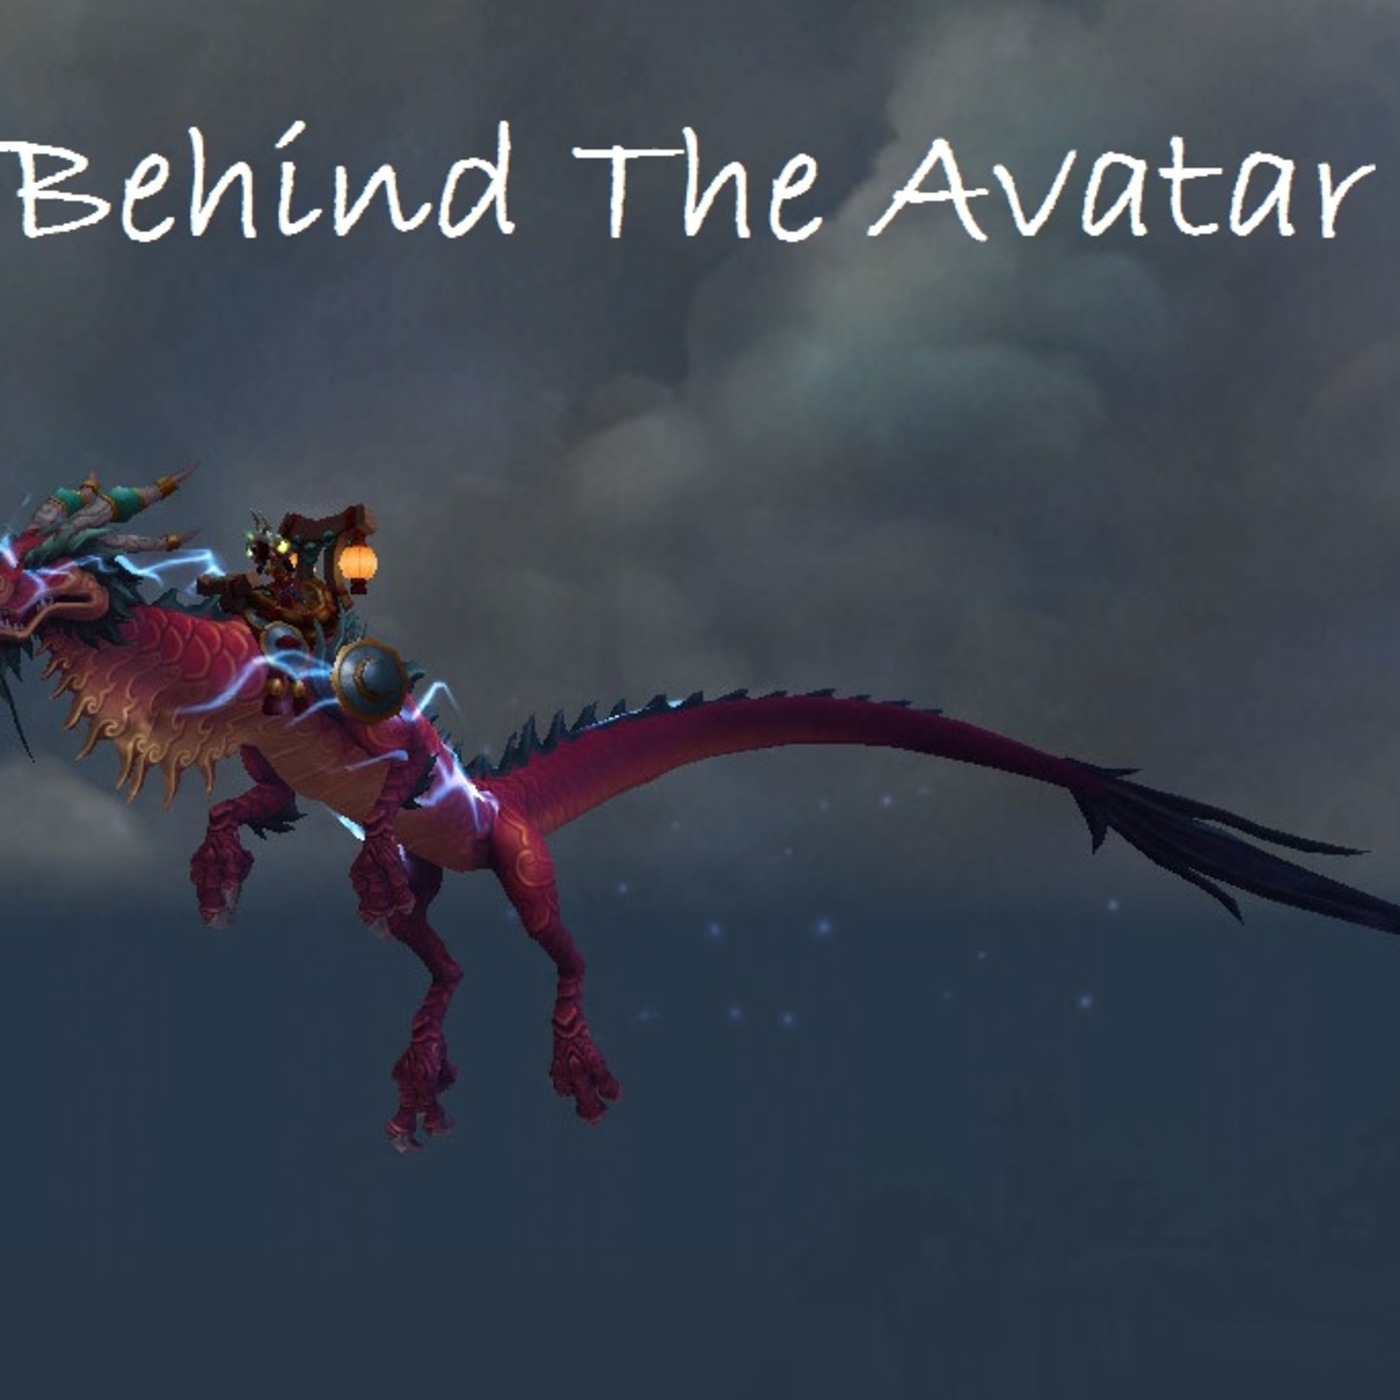 Behind The Avatar